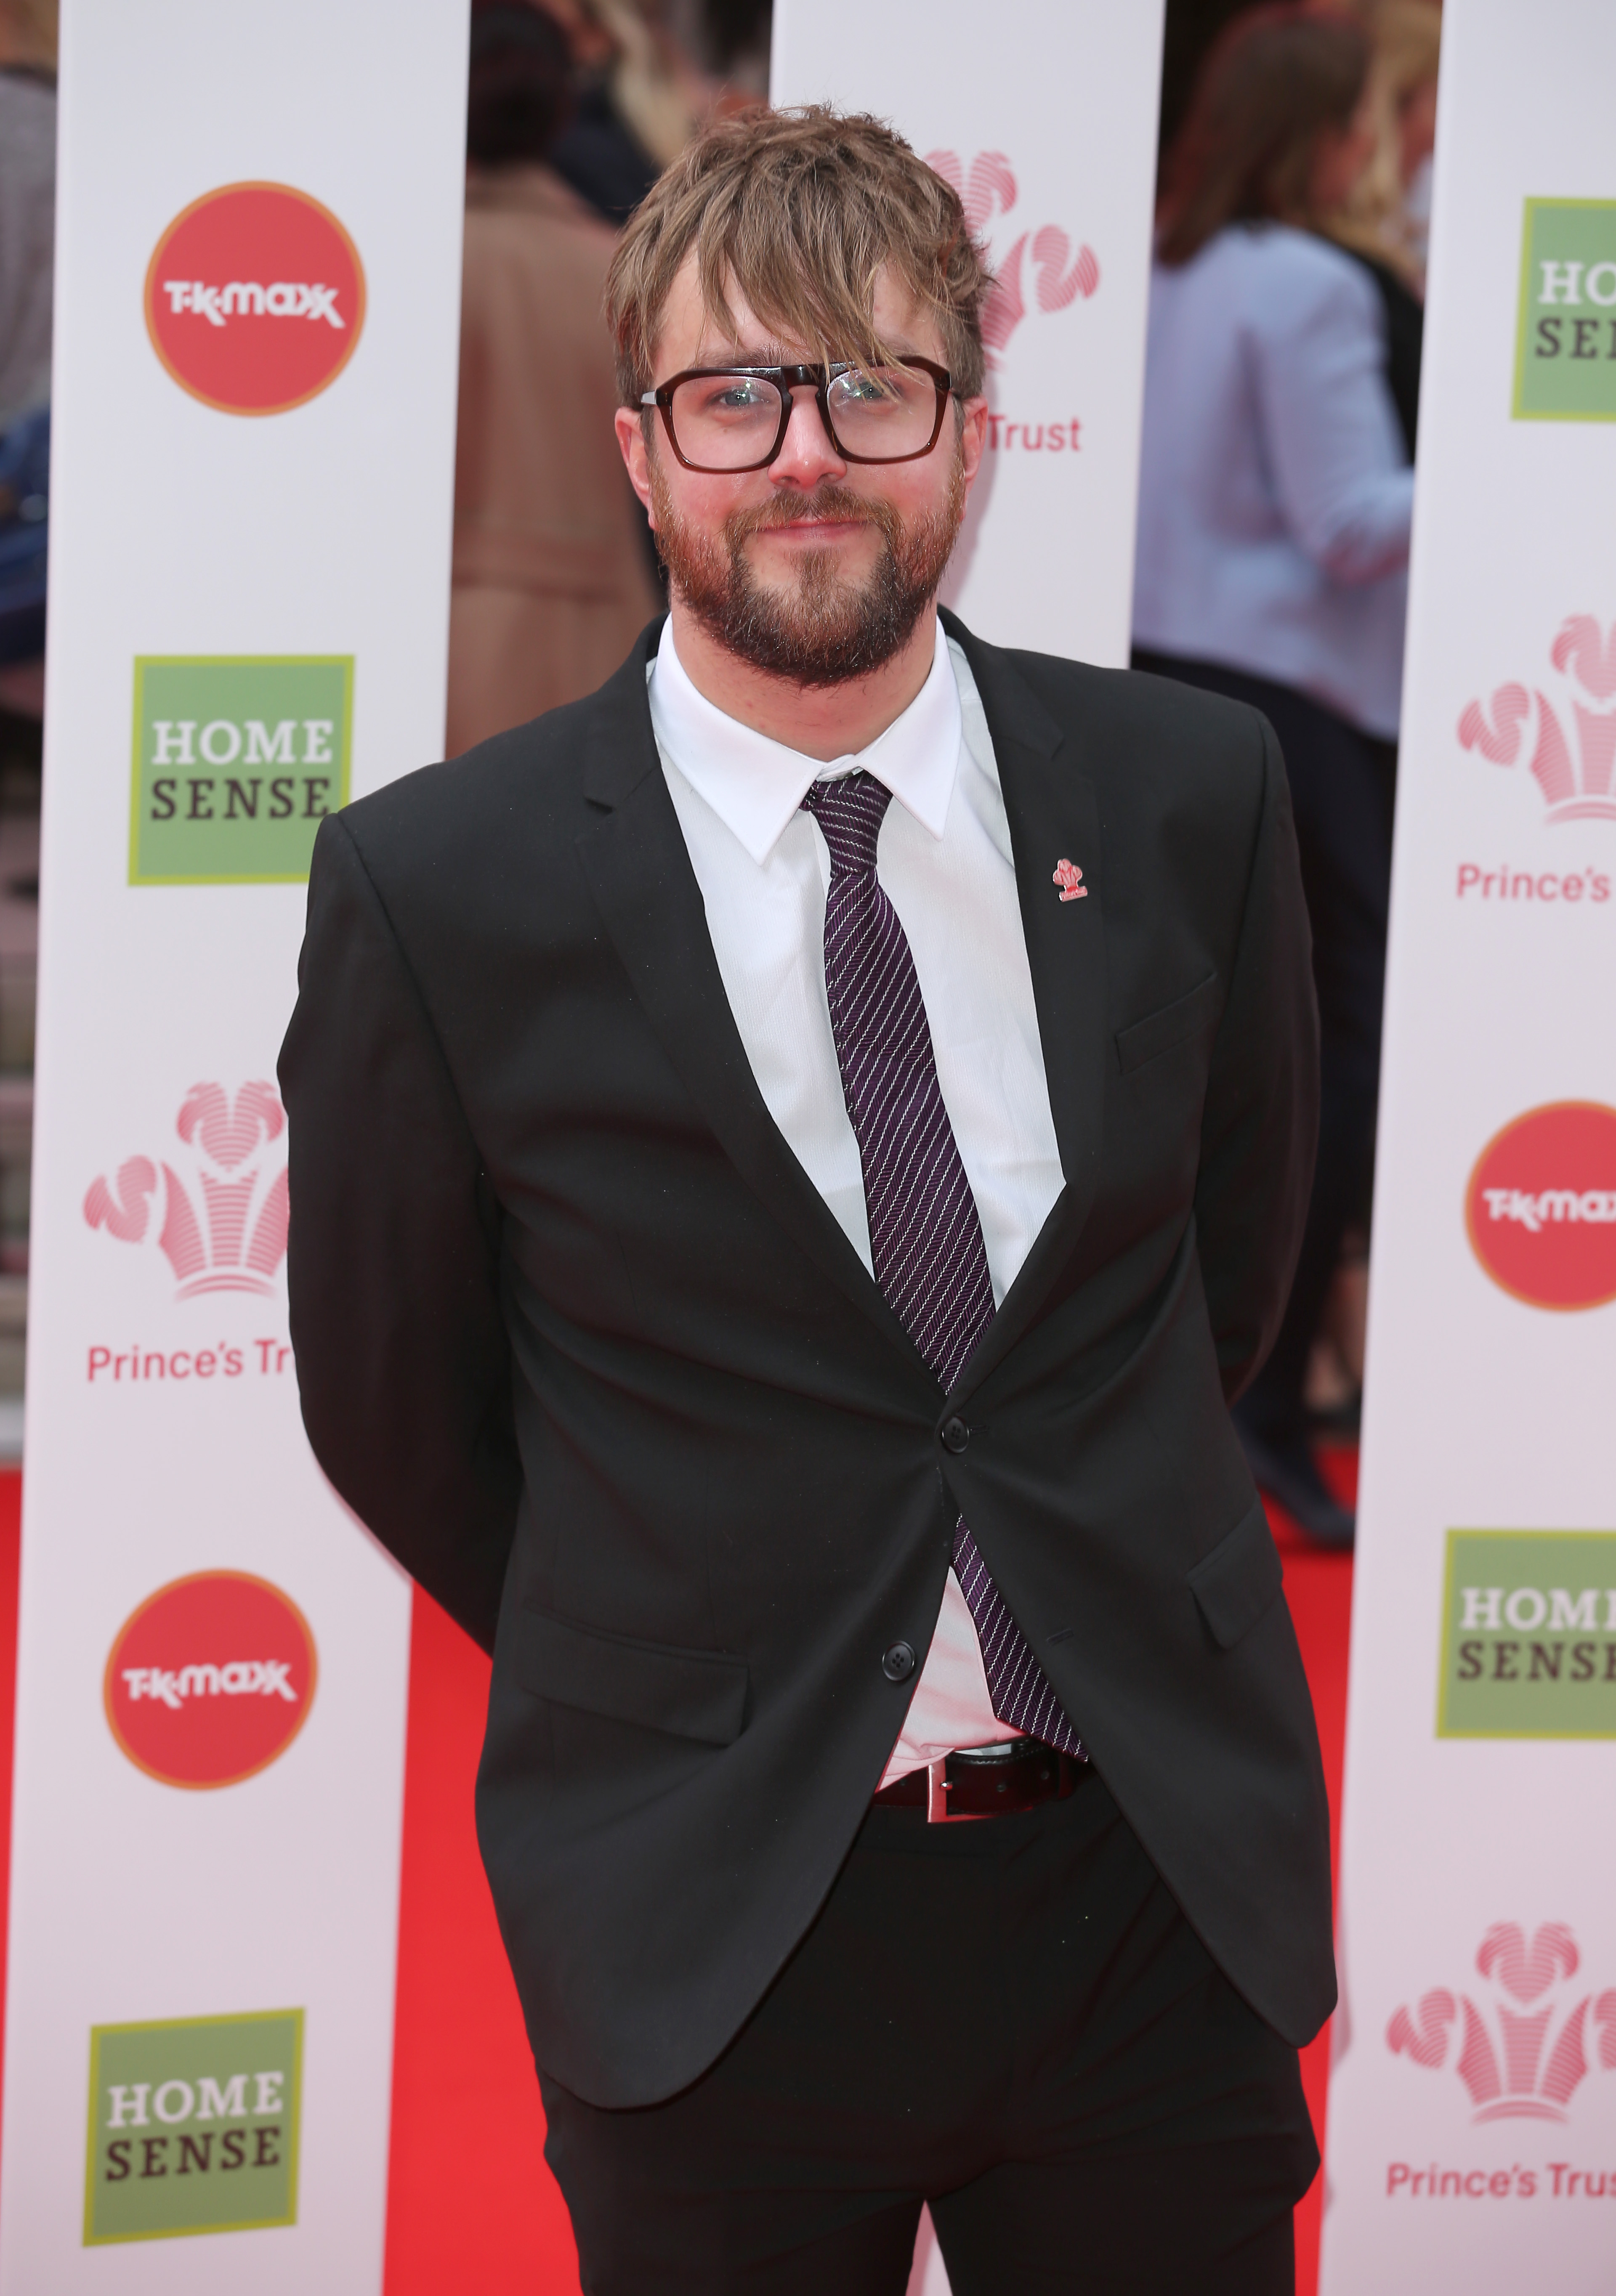 Iain Stirling Prince's Trust